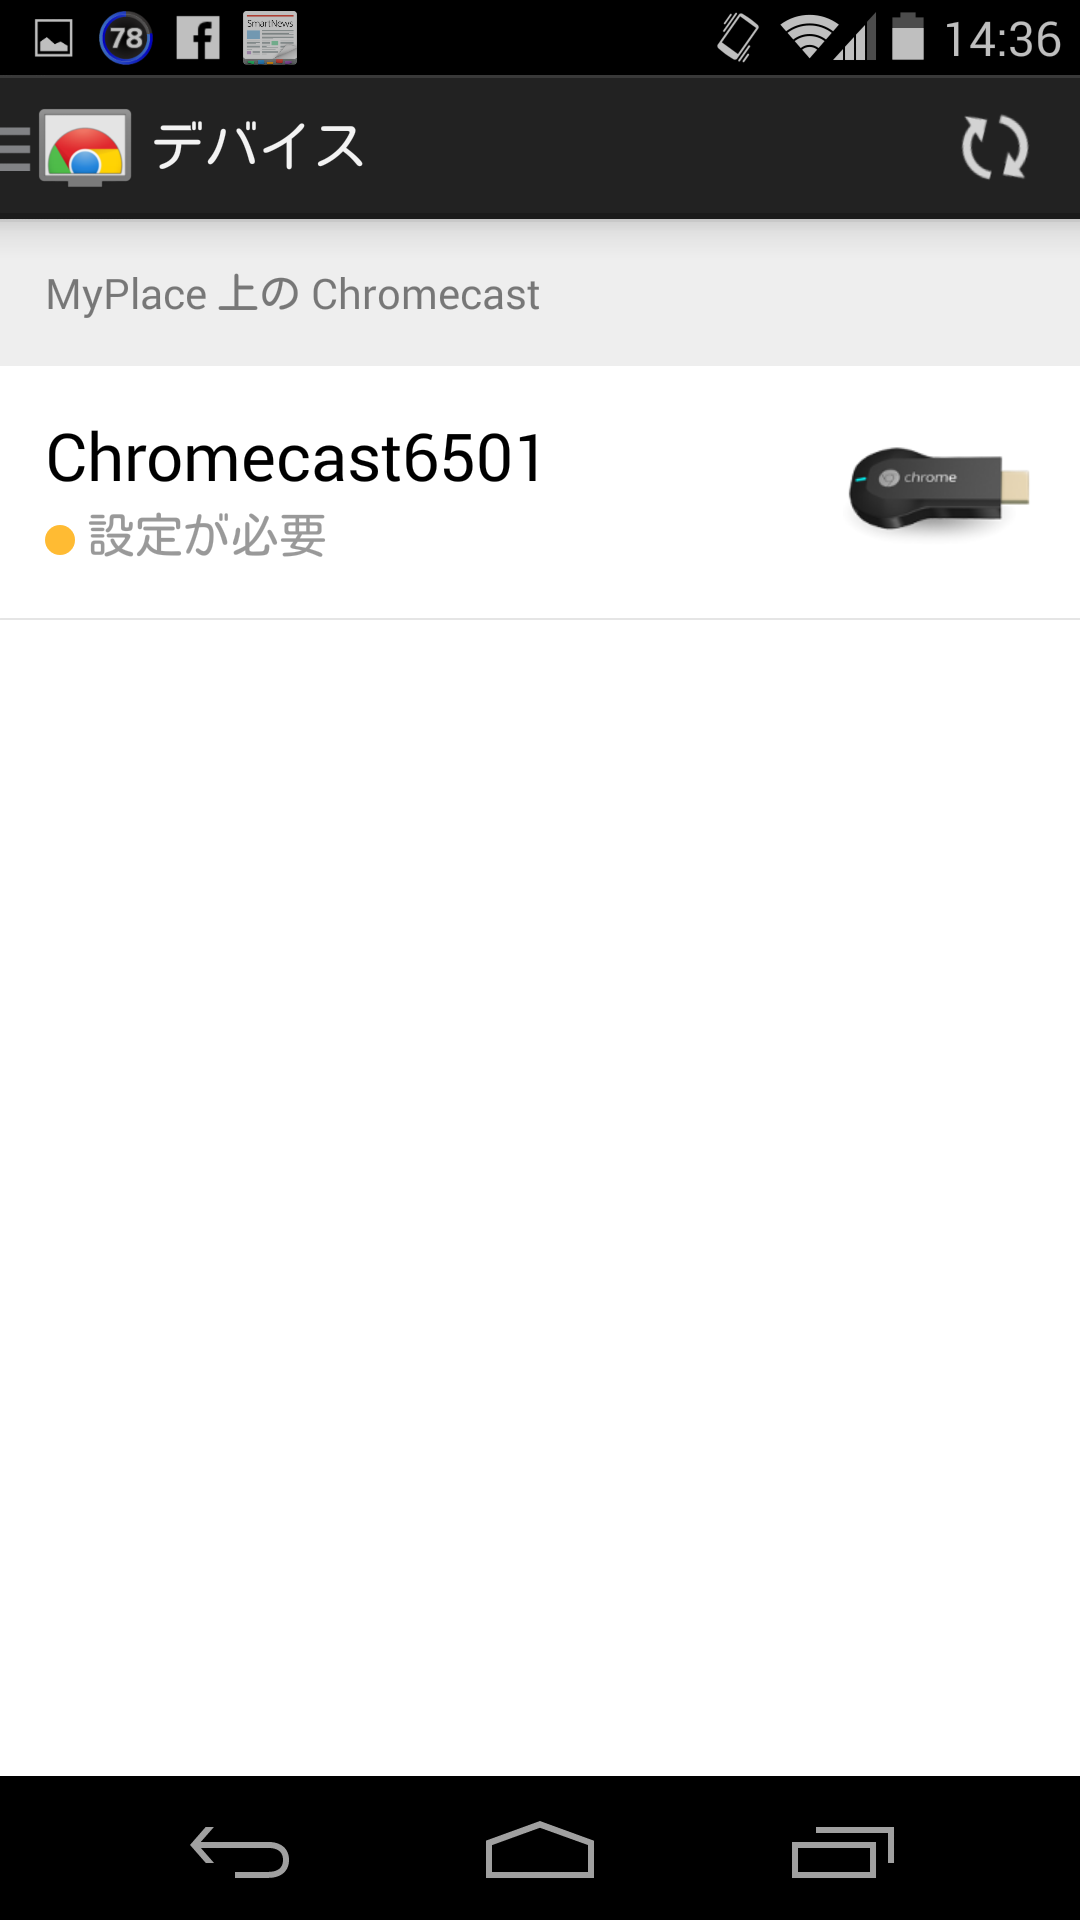 chromcast setup